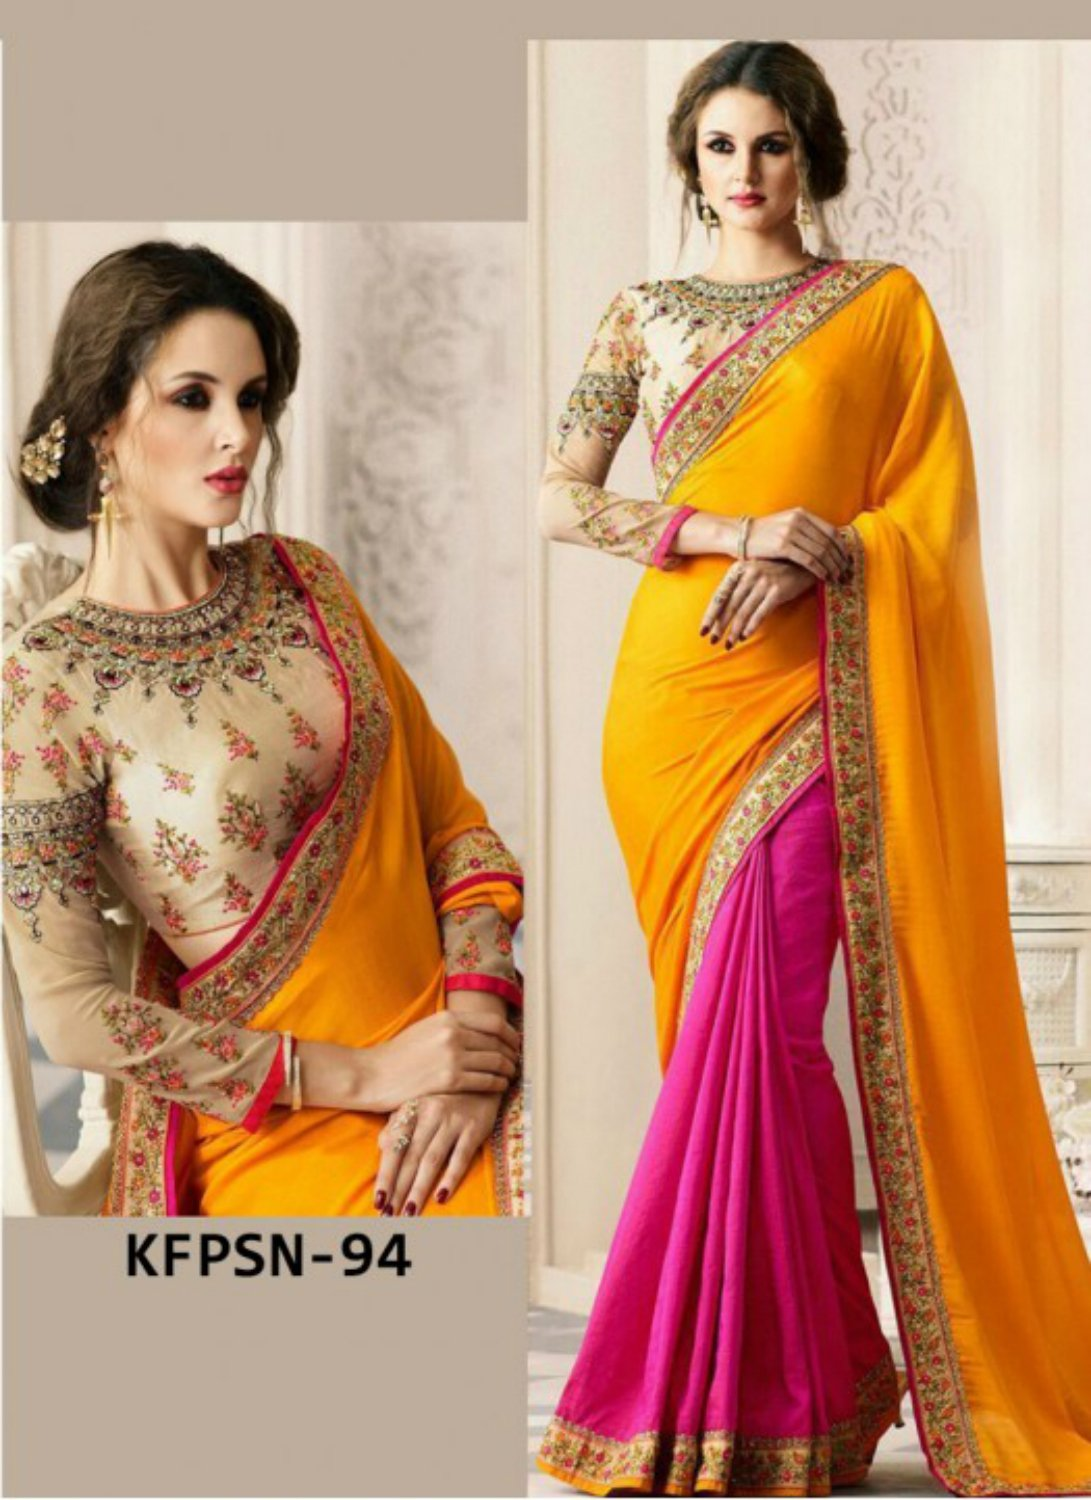 Colourful KFPSN94 Bollywood Inspired Pink Yellow Beige Georgette Silk Saree - Fashion Nation